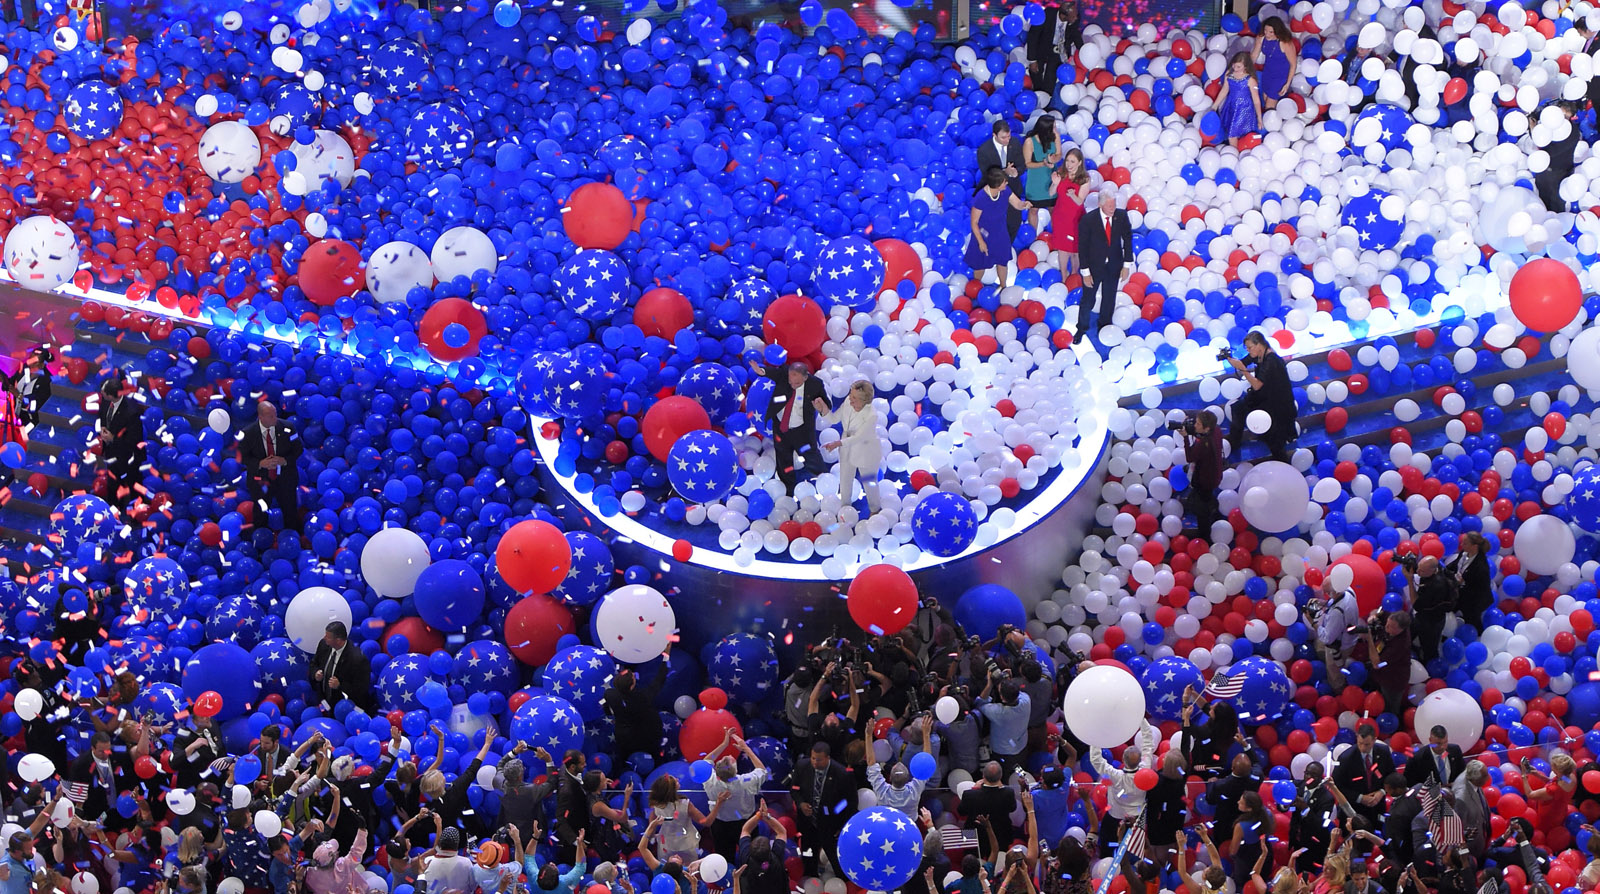 Democratic vice presidential nominee Sen. Tim Kaine, D-Va., and Democratic presidential nominee Hillary Clinton waves to supporters as balloons s the balloons fall during the final day of the Democratic National Convention in Philadelphia , Friday, July 29, 2016. (AP Photo/Mark J. Terrill)